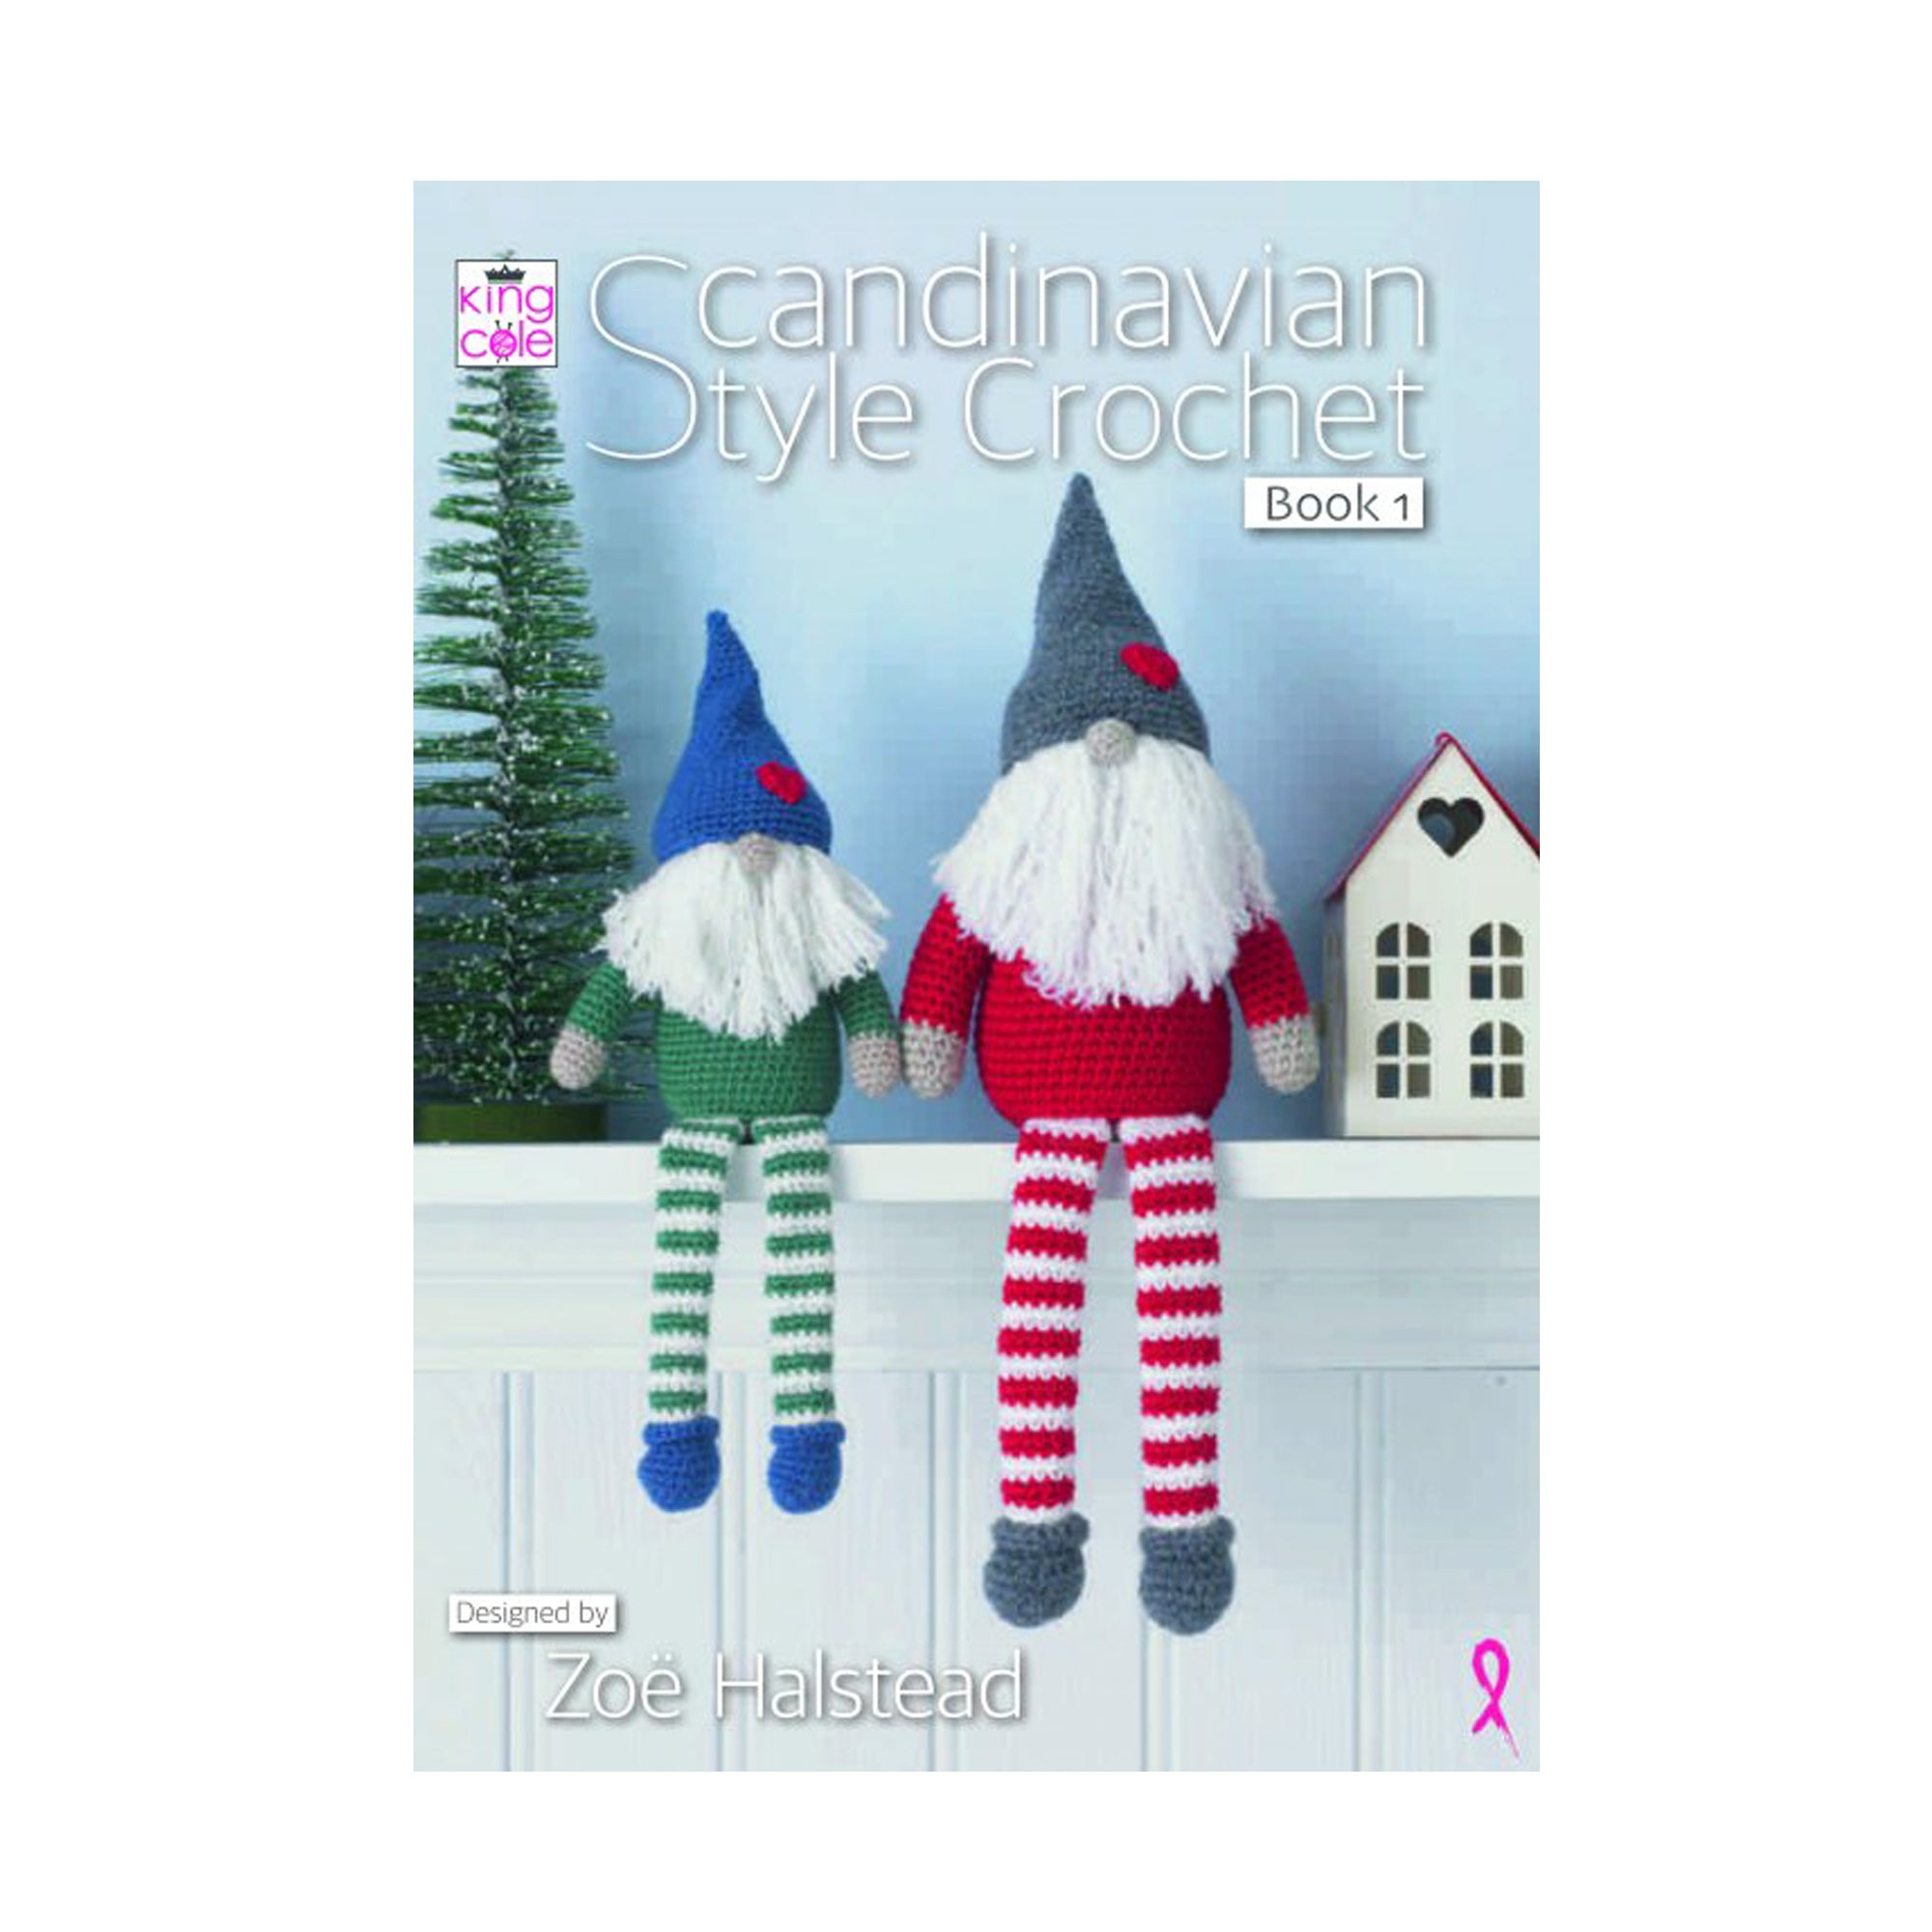 Crochet Pattern: Scandinavian Style Crochet Book 1